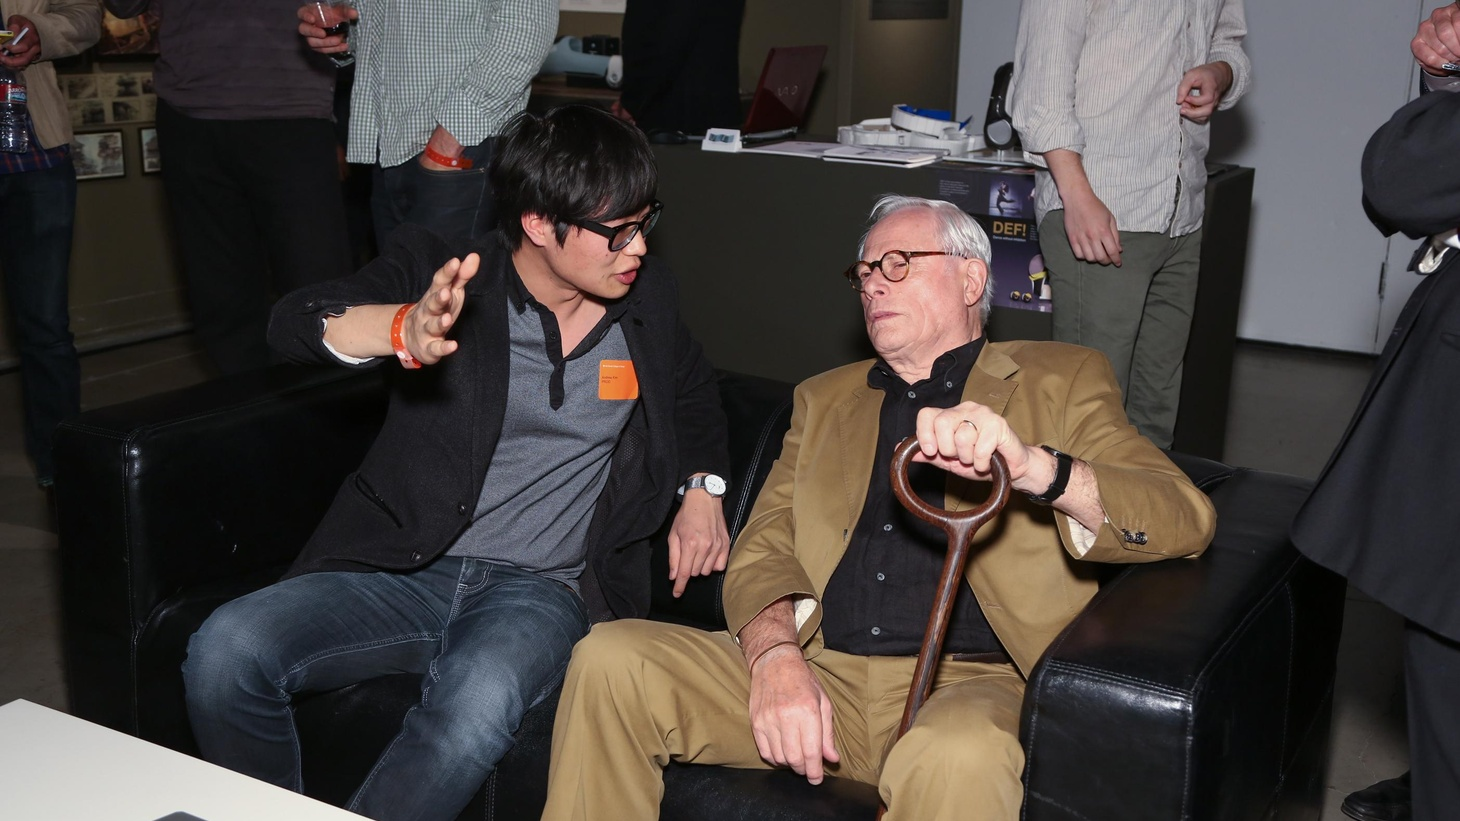 Jae Won Cho moved around so much he created furniture to fit his lifestyle. Meanwhile, Dieter Rams' products remain universal. A talk with two product designers.